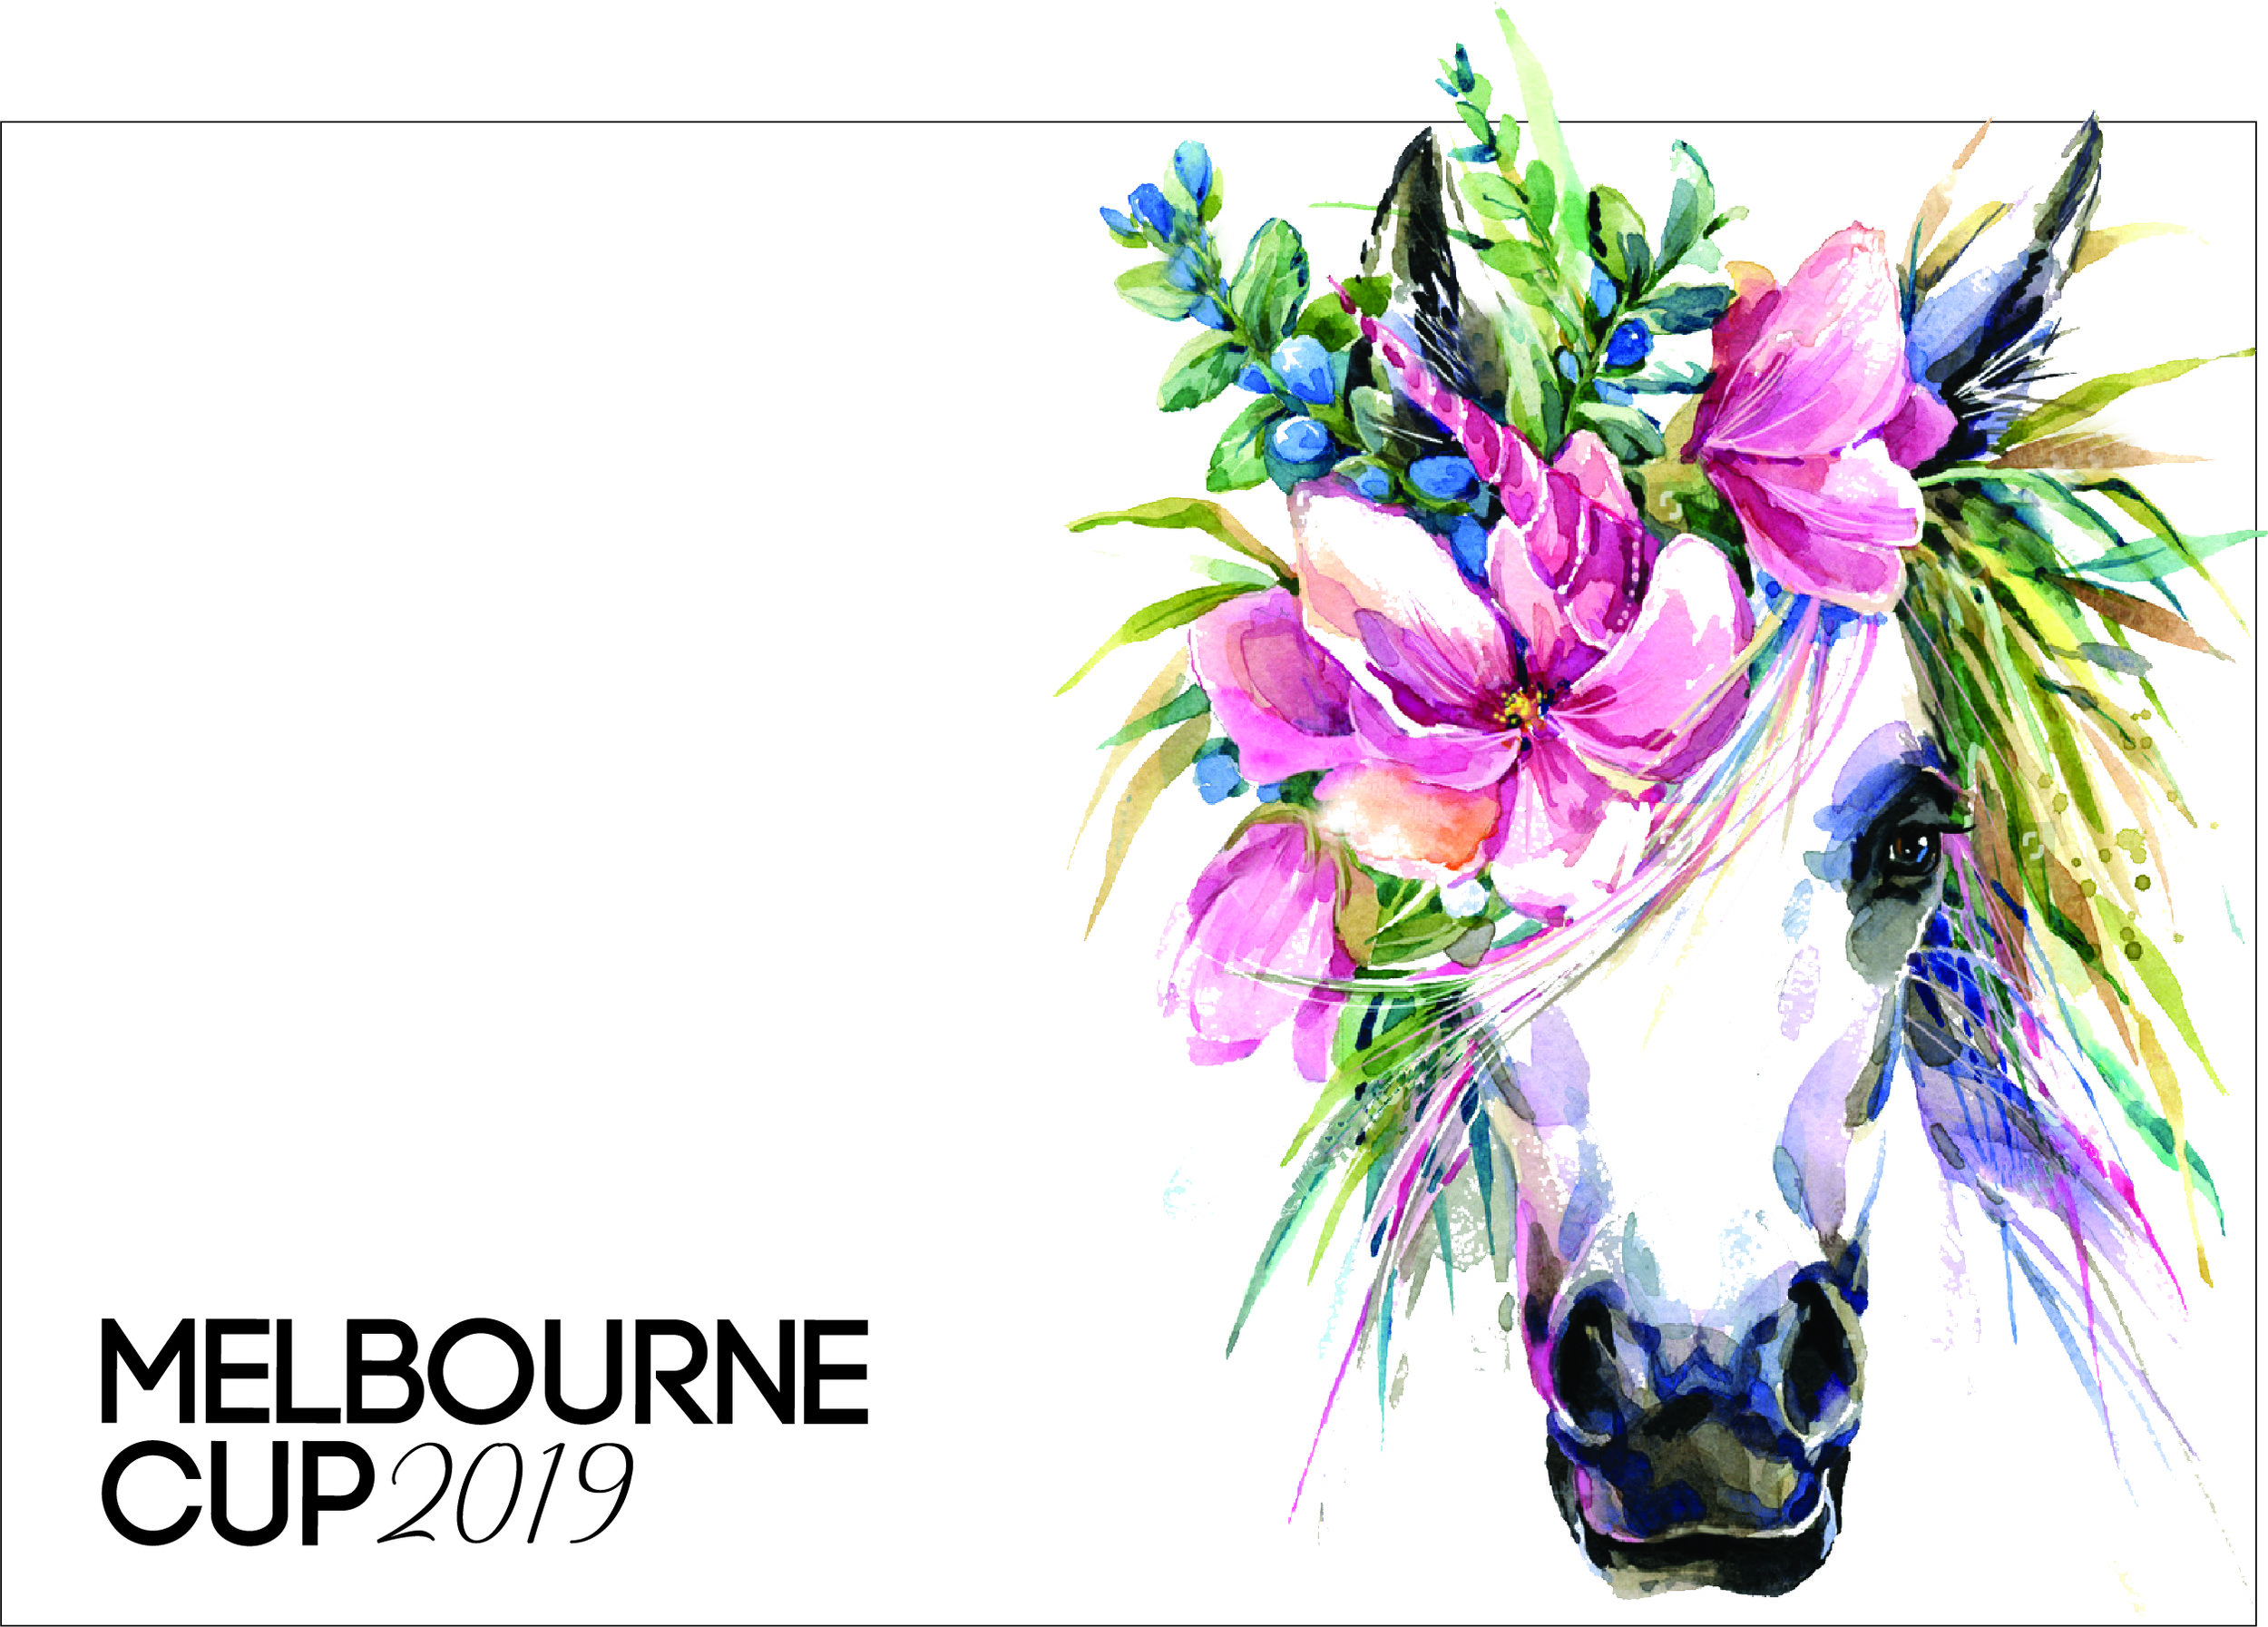 """""""Australia's most famous annual horse race"""" - Celebrate it with us at Bar ClevelandTUESDAY 5TH NOVEMBER 2019"""